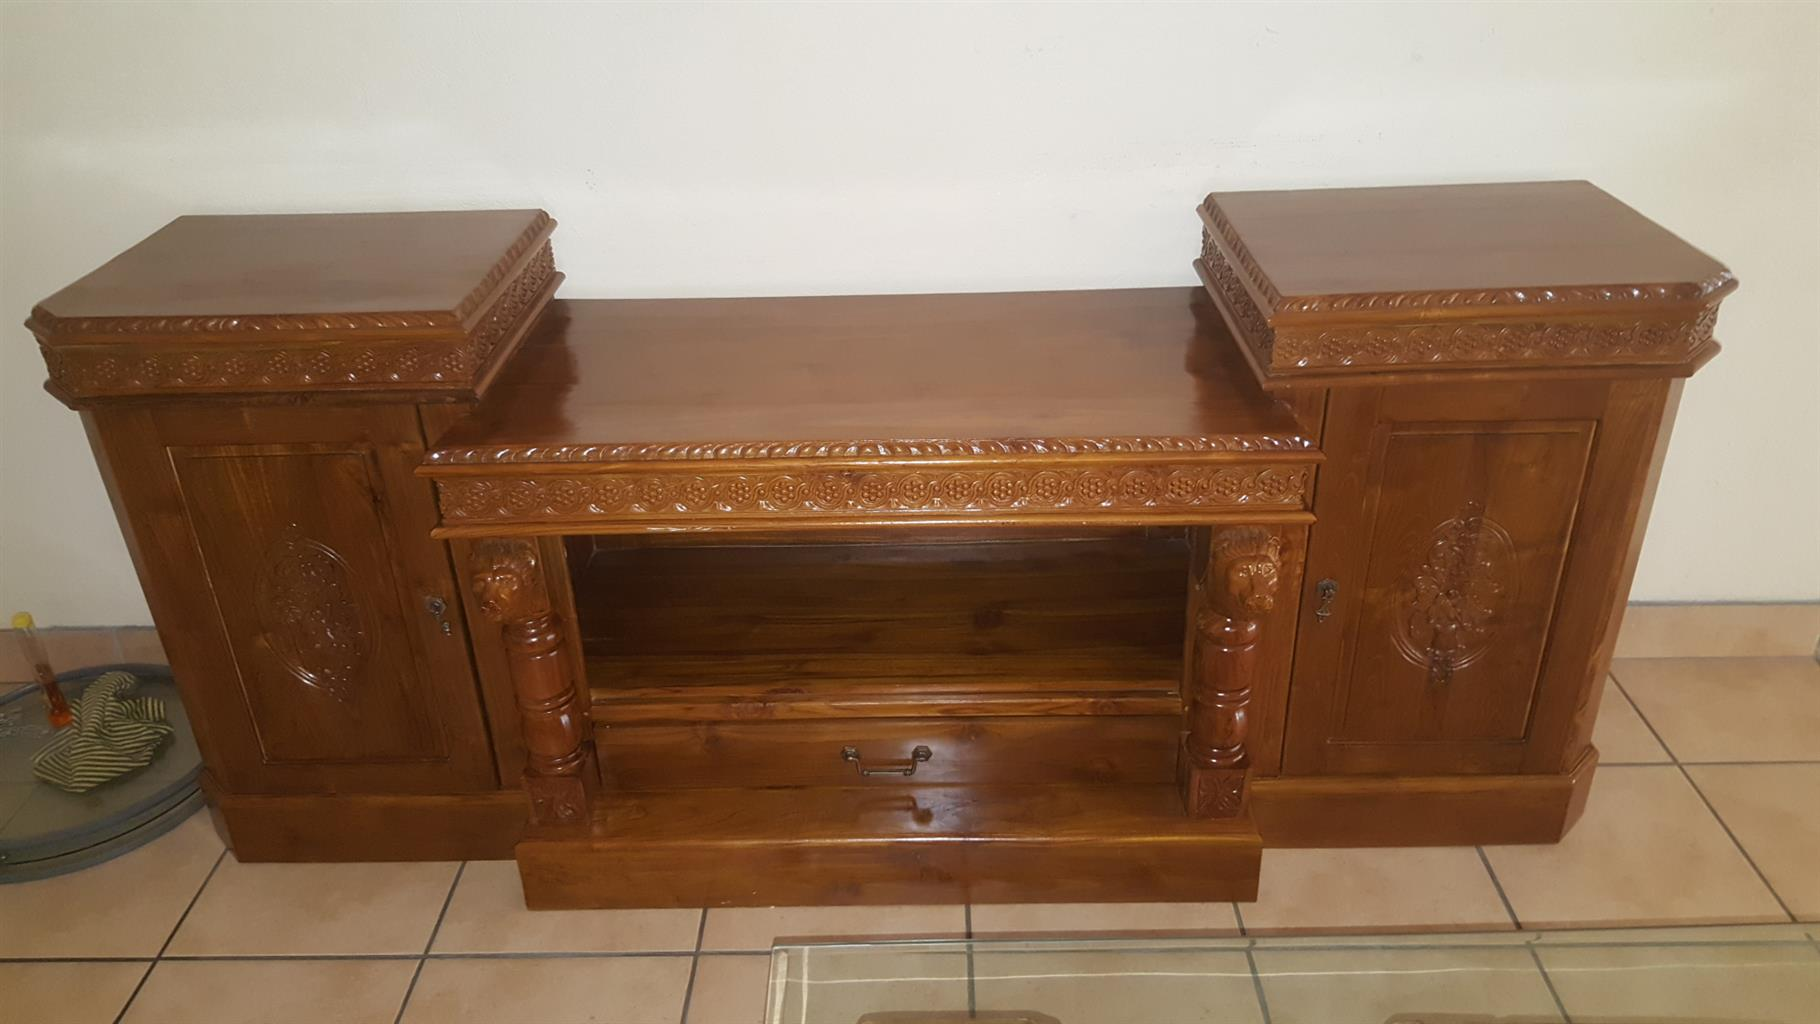 Imported Bali Furniture